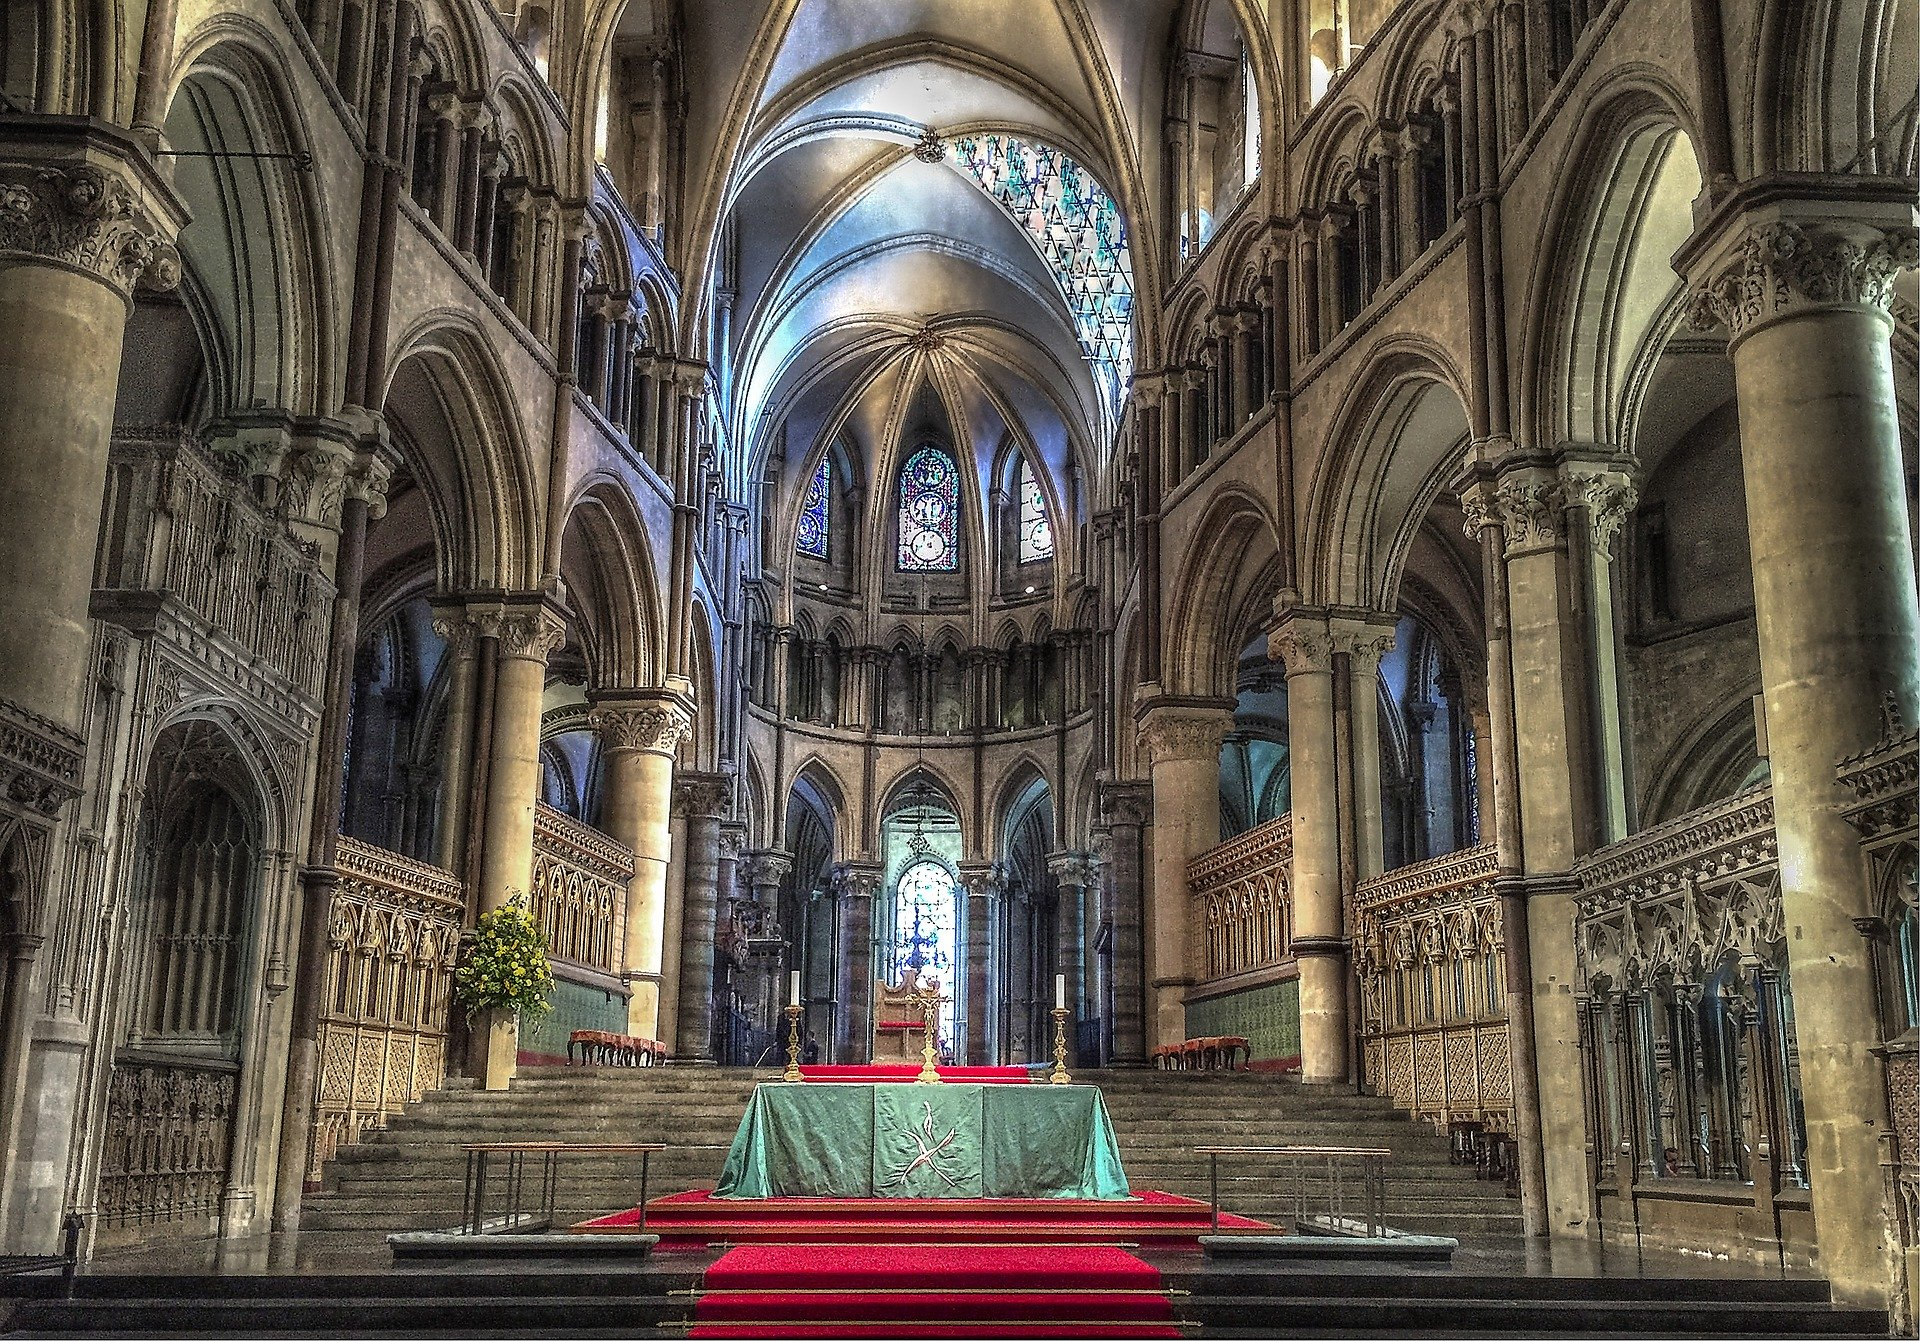 An image of the interior of Canterbury Cathedral